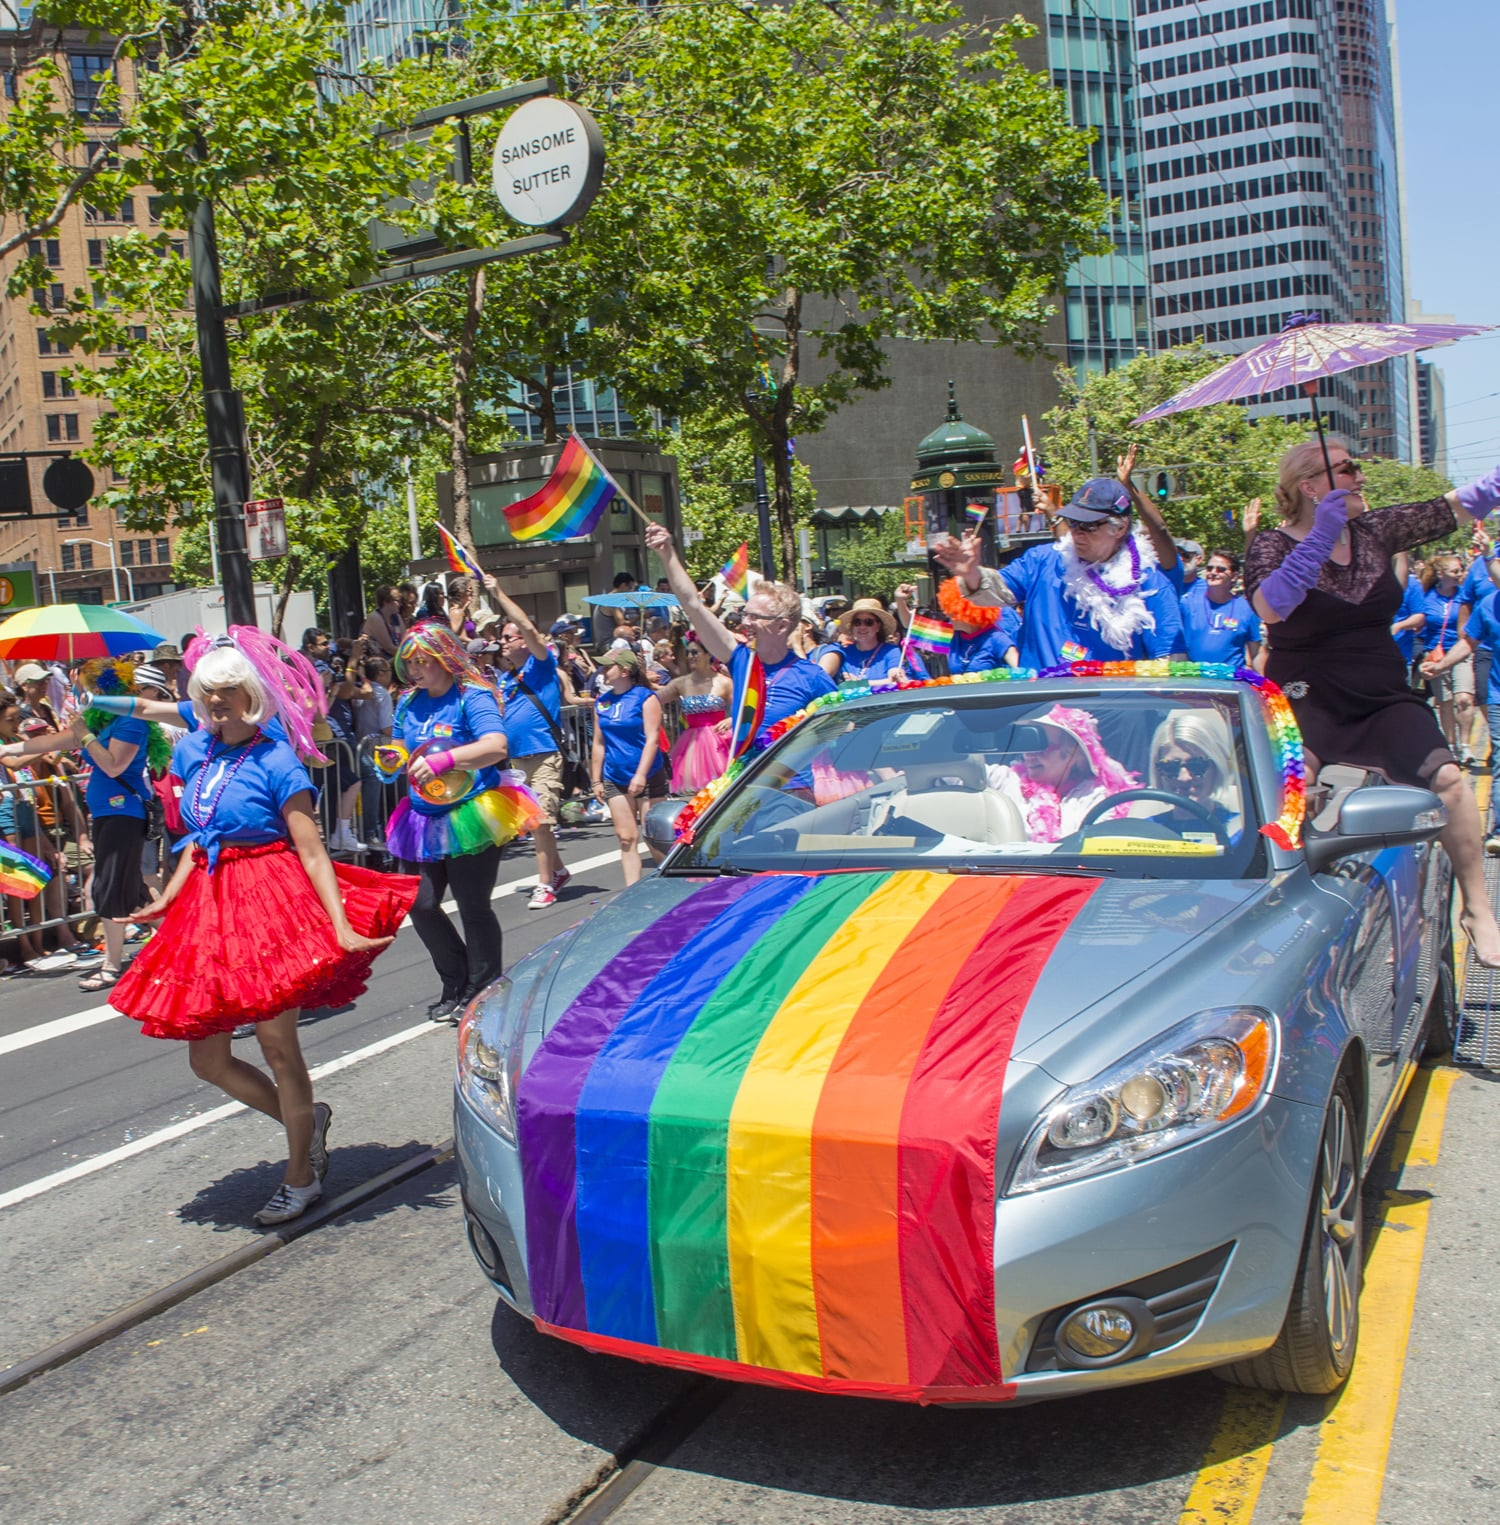 Attend the Gay Pride Parade in San Francisco